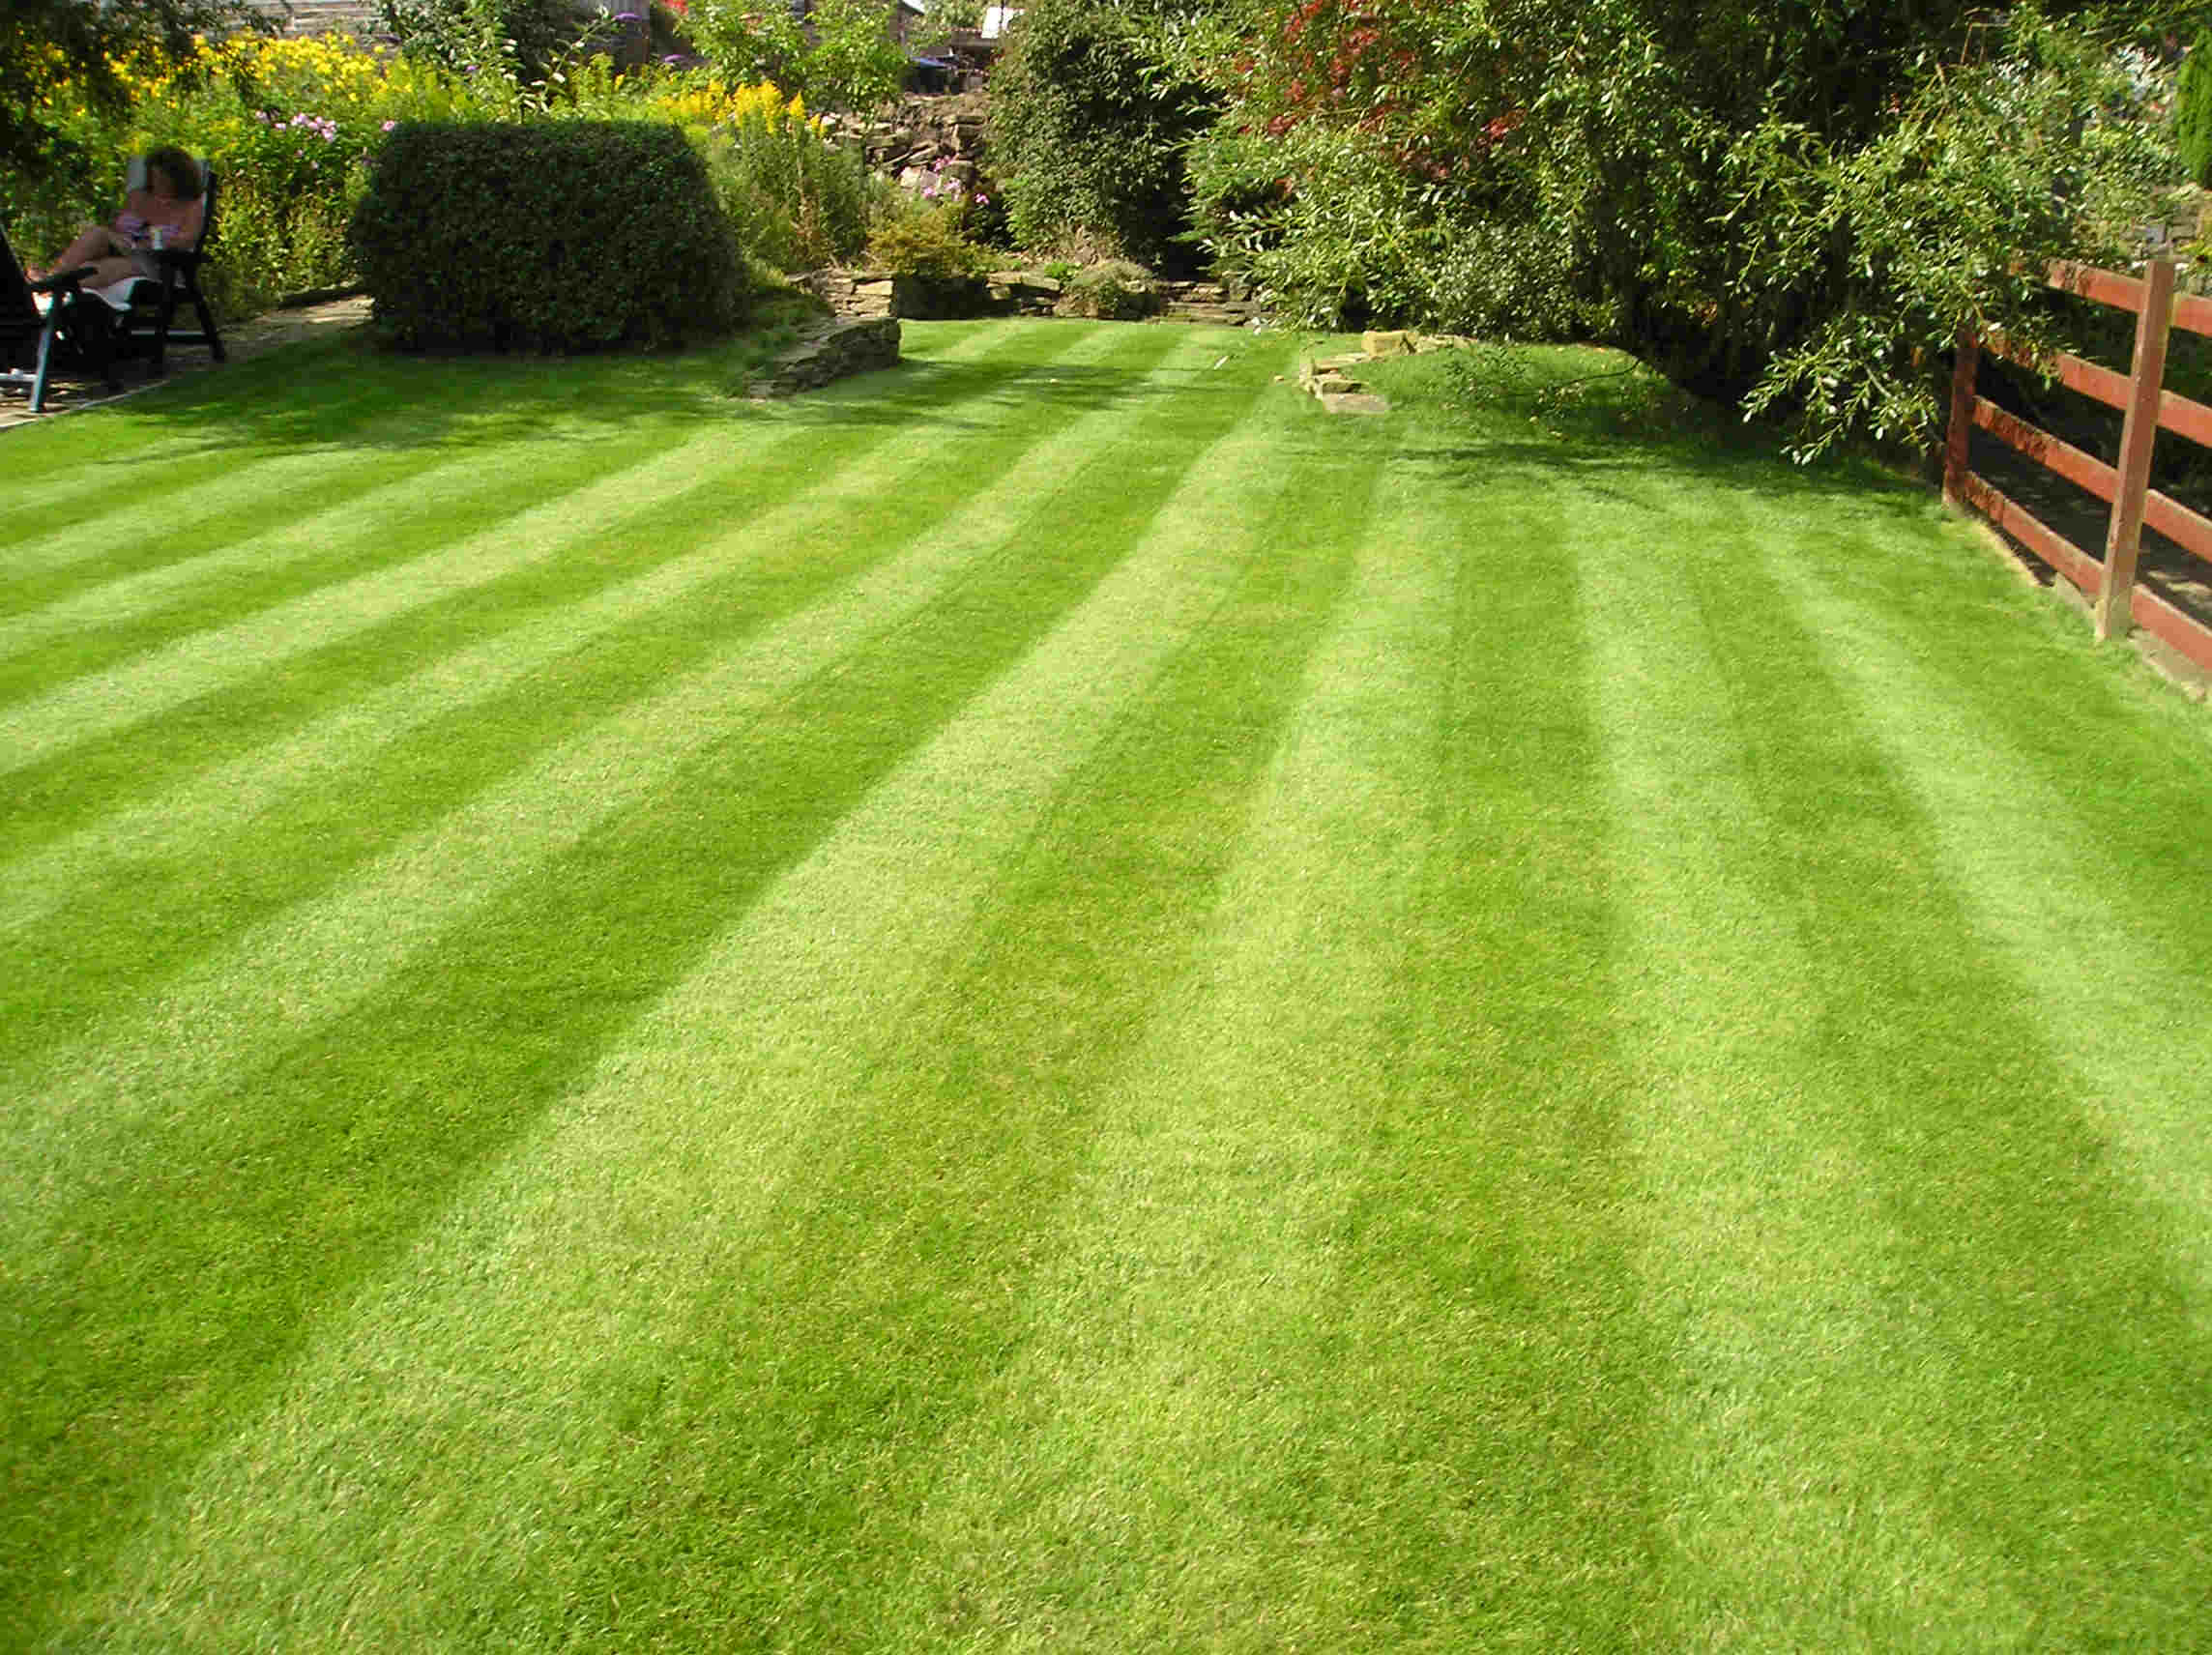 Lawn mowing total lawn care inc full lawn maintenance for Landscape maintenance